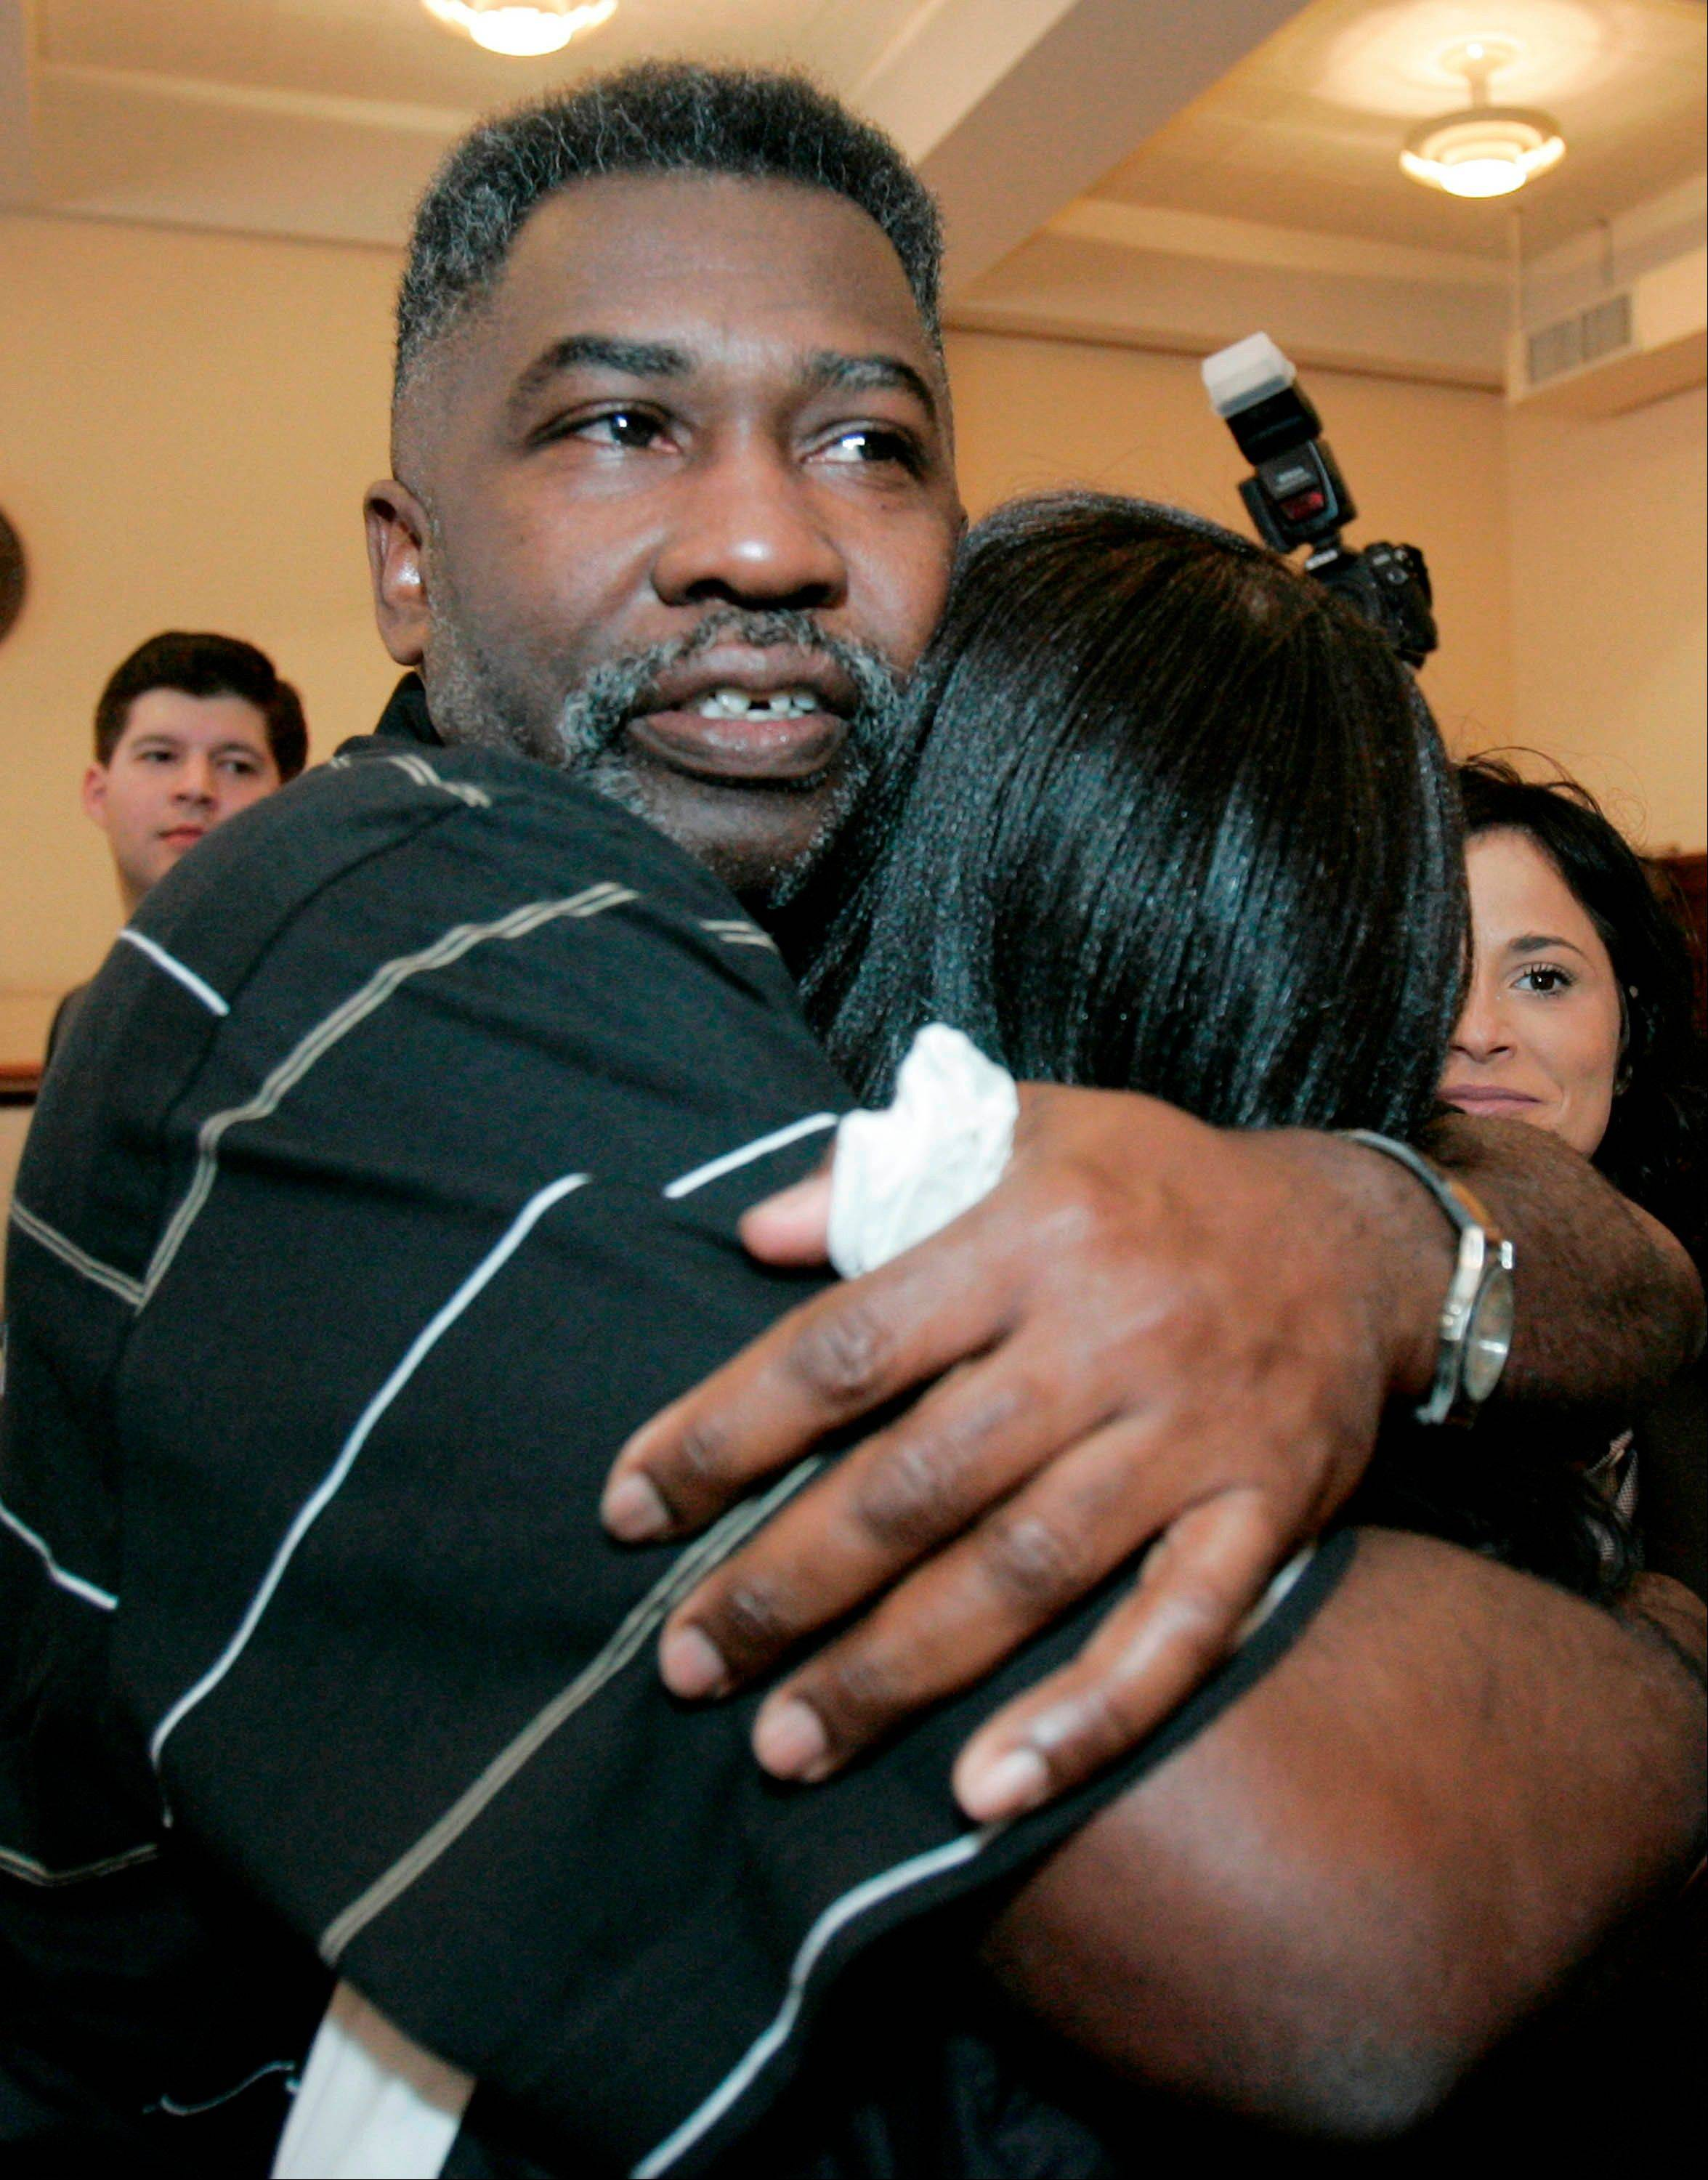 Levon Brooks, left, hugs a friend moments after a judge released him in 2008 pending a new trial for the murder of a child in Macon, Miss. Brooks was convicted in 1992 of raping and killing his ex-girlfriend's 3-year-old daughter and sentenced to life in prison. He was exonerated after years of fighting by the Mississippi Innocence Project.